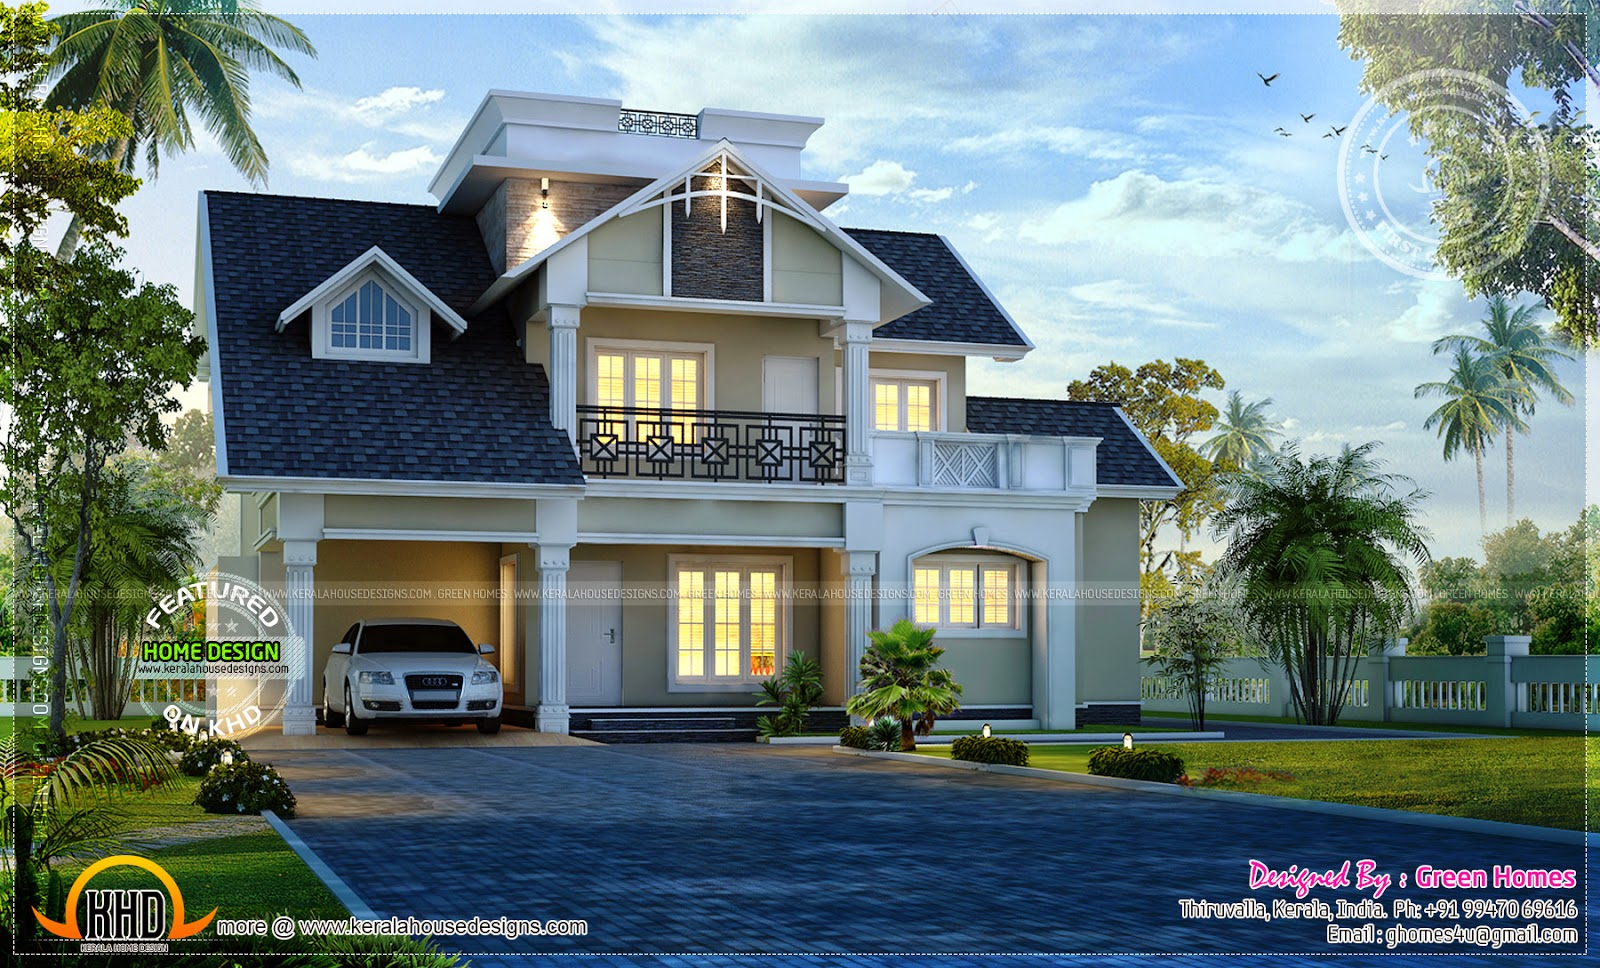 Awesome modern house exterior kerala home design and for Kerala modern house designs